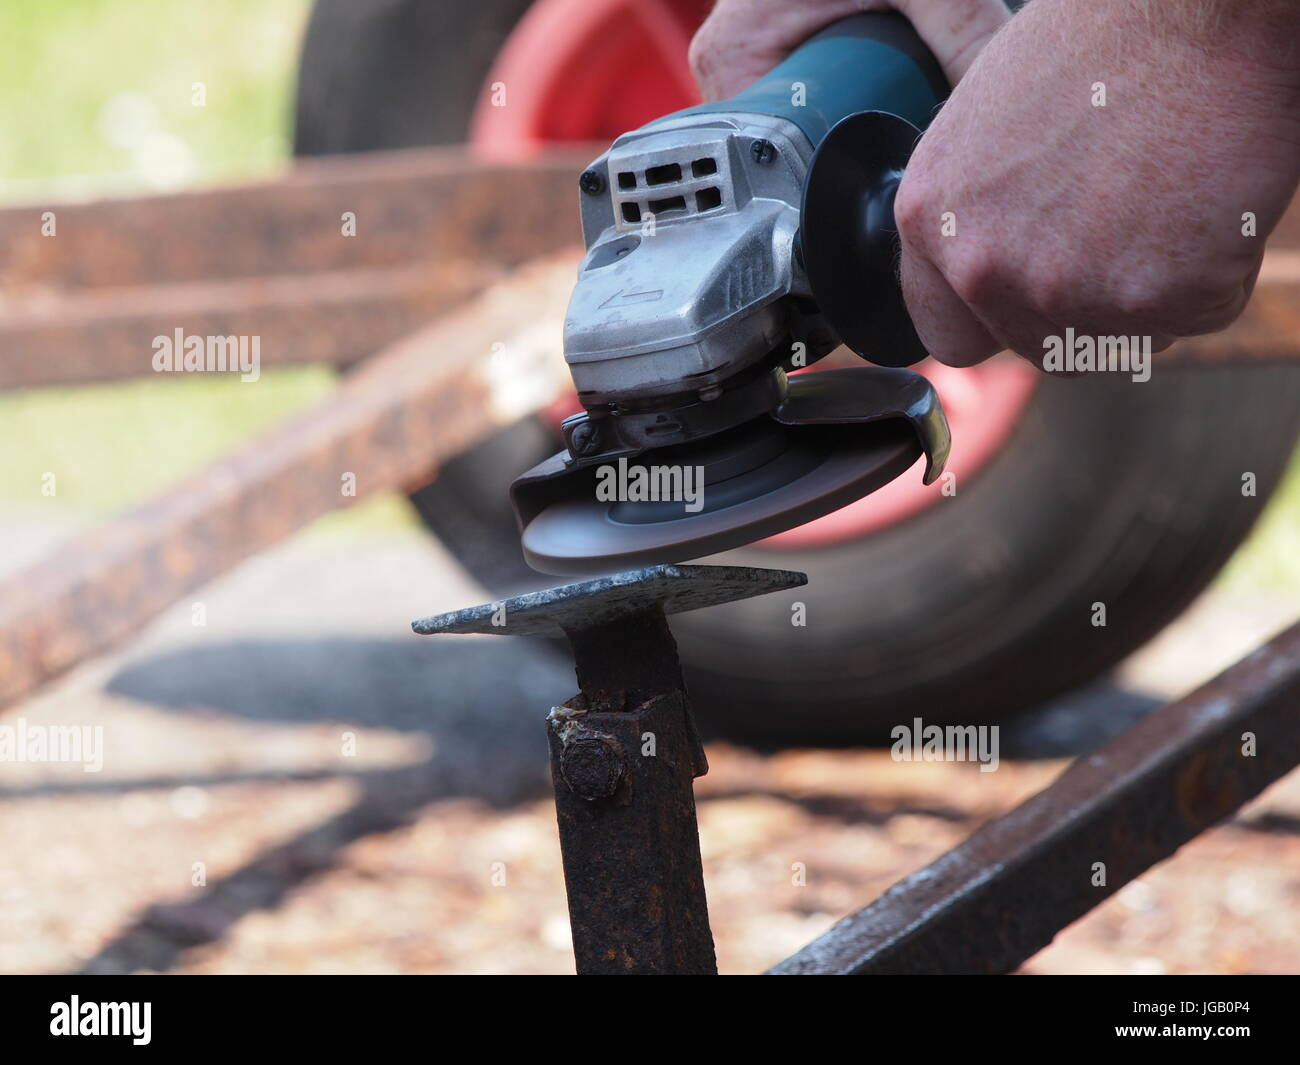 Close up view of an angle grinder being used on a trailer. - Stock Image